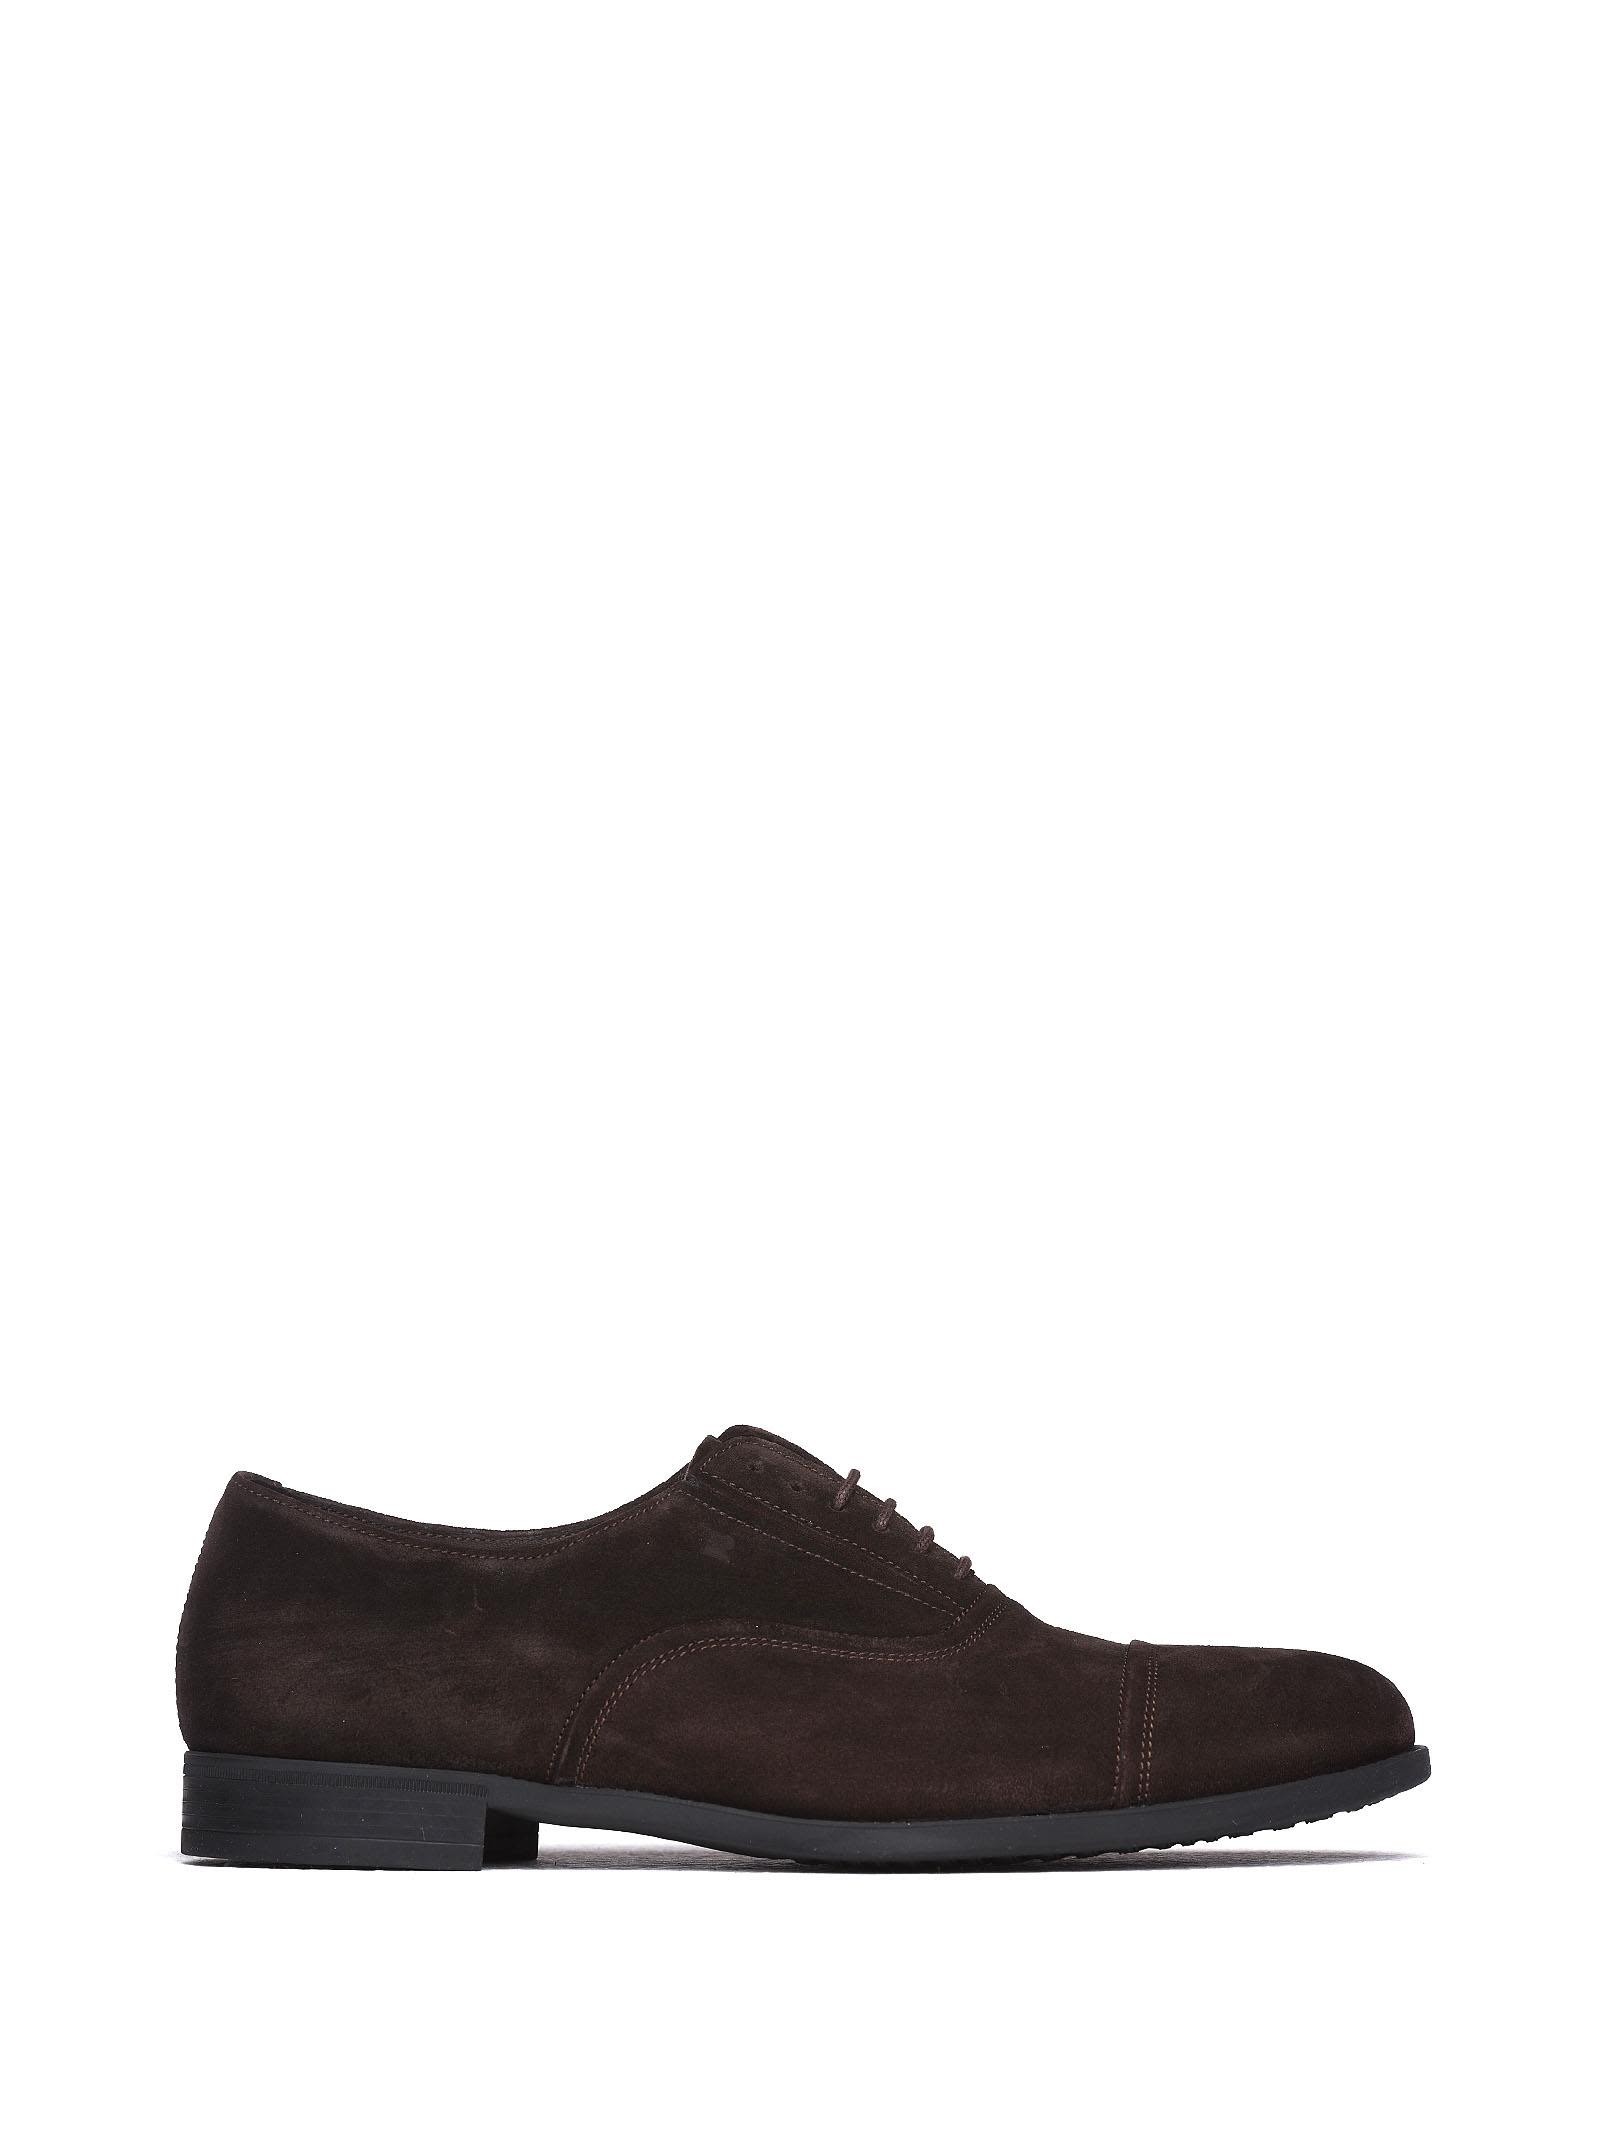 FRATELLI ROSSETTI ONE Lace-Up In Dark Brown Suede in Cacao